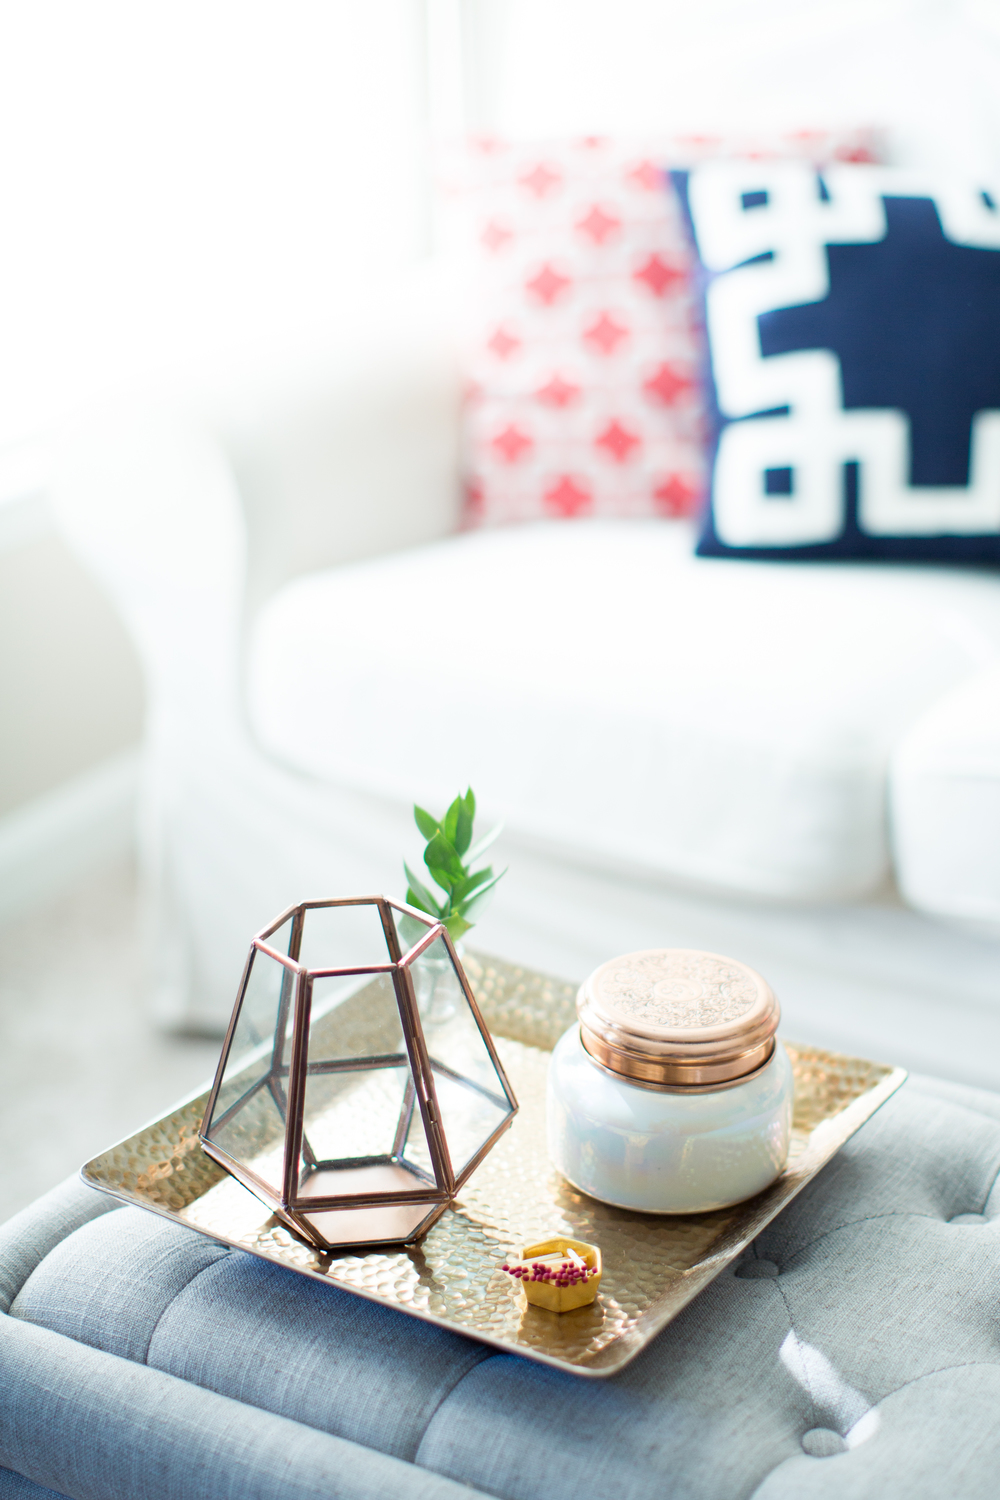 Coffe table styling | Minimalist house design | Southern home tour | The School of Styling - theschoolofstyling.com